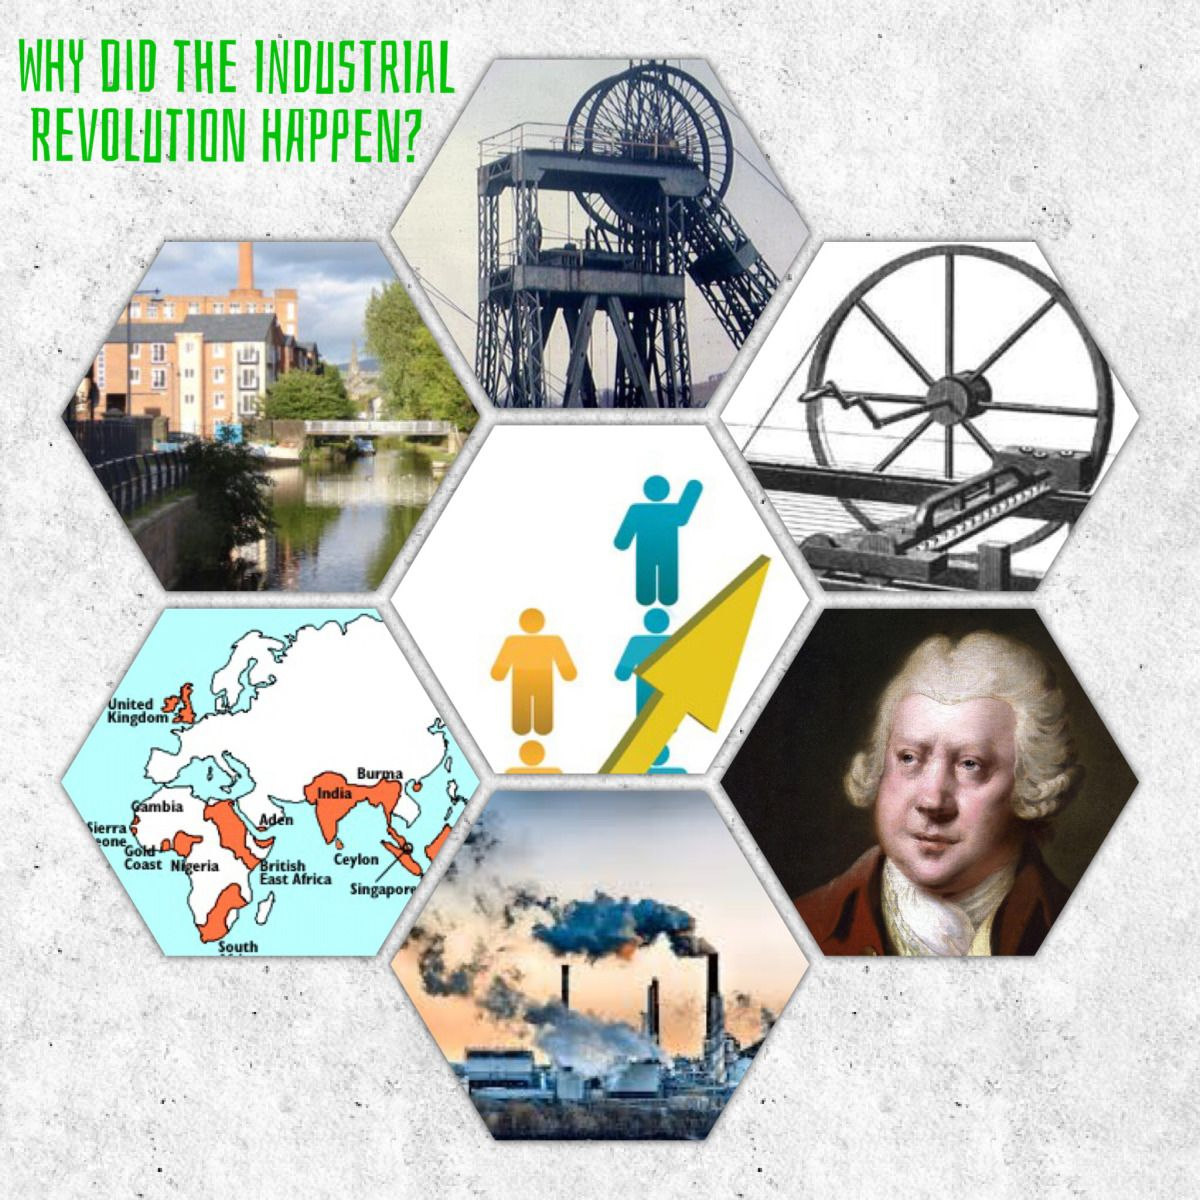 Why Did The Industrial Revolution Happen Visual Hexagon